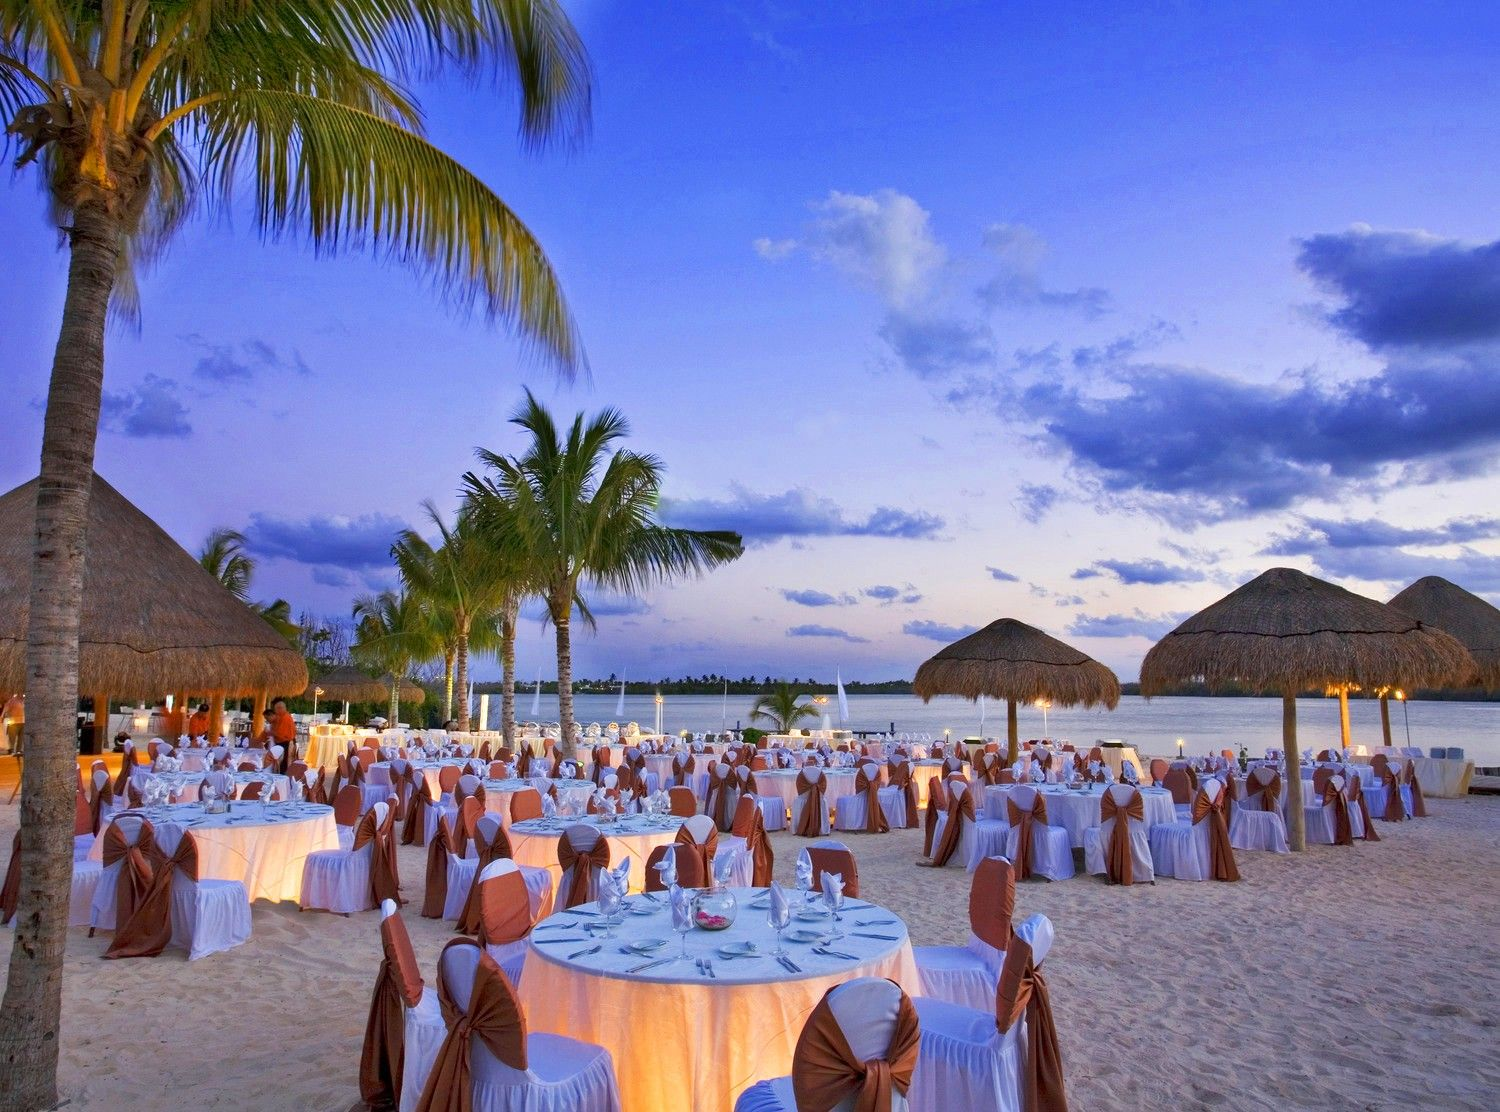 The westin resort spa cancun cancun mexico beach for Weddings in the carribean